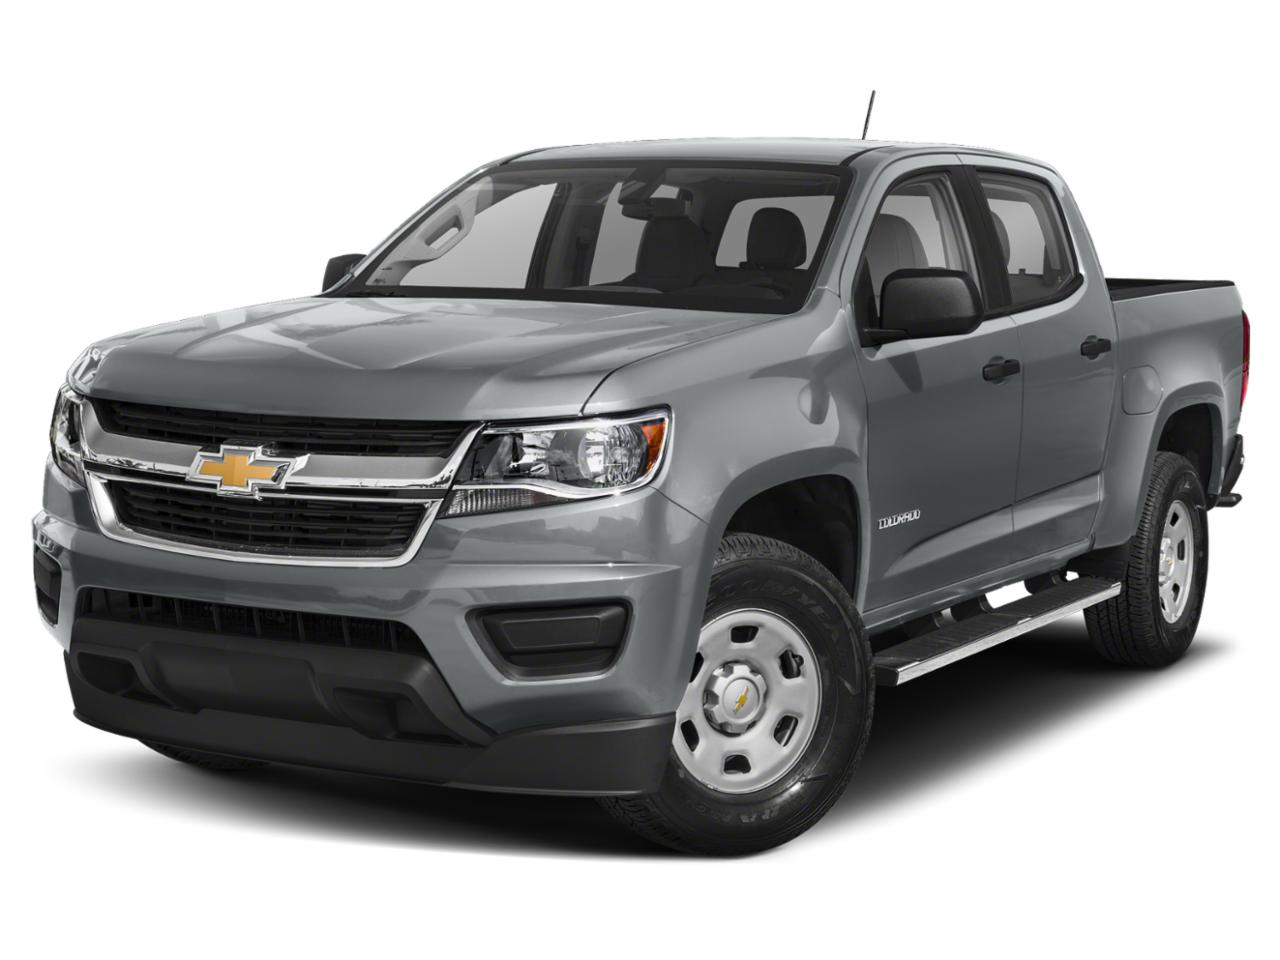 2020 Chevrolet Colorado Vehicle Photo in Rockville, MD 20852